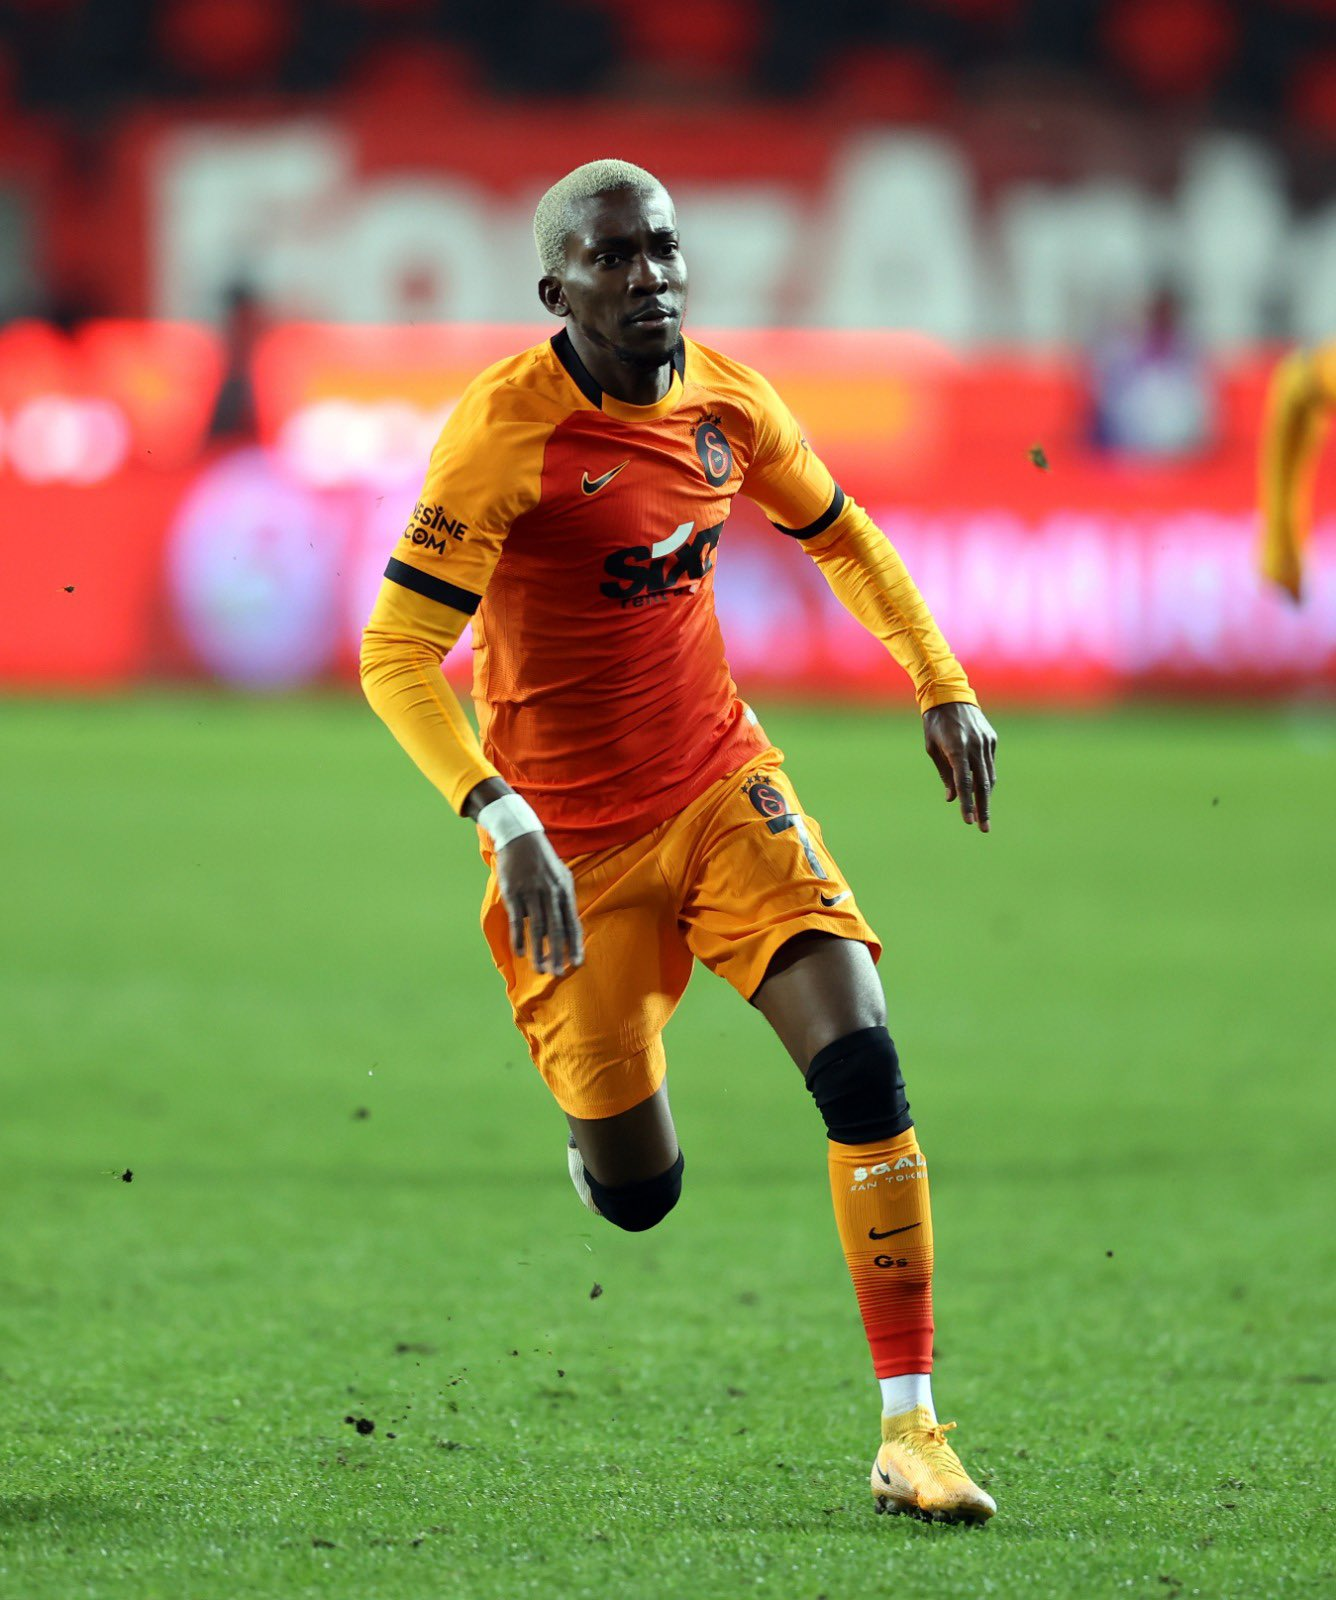 Turkey: Onyekuru Scores  Again For Galatasaray; Osayi-Samuel Stars In Fenerbahce Win